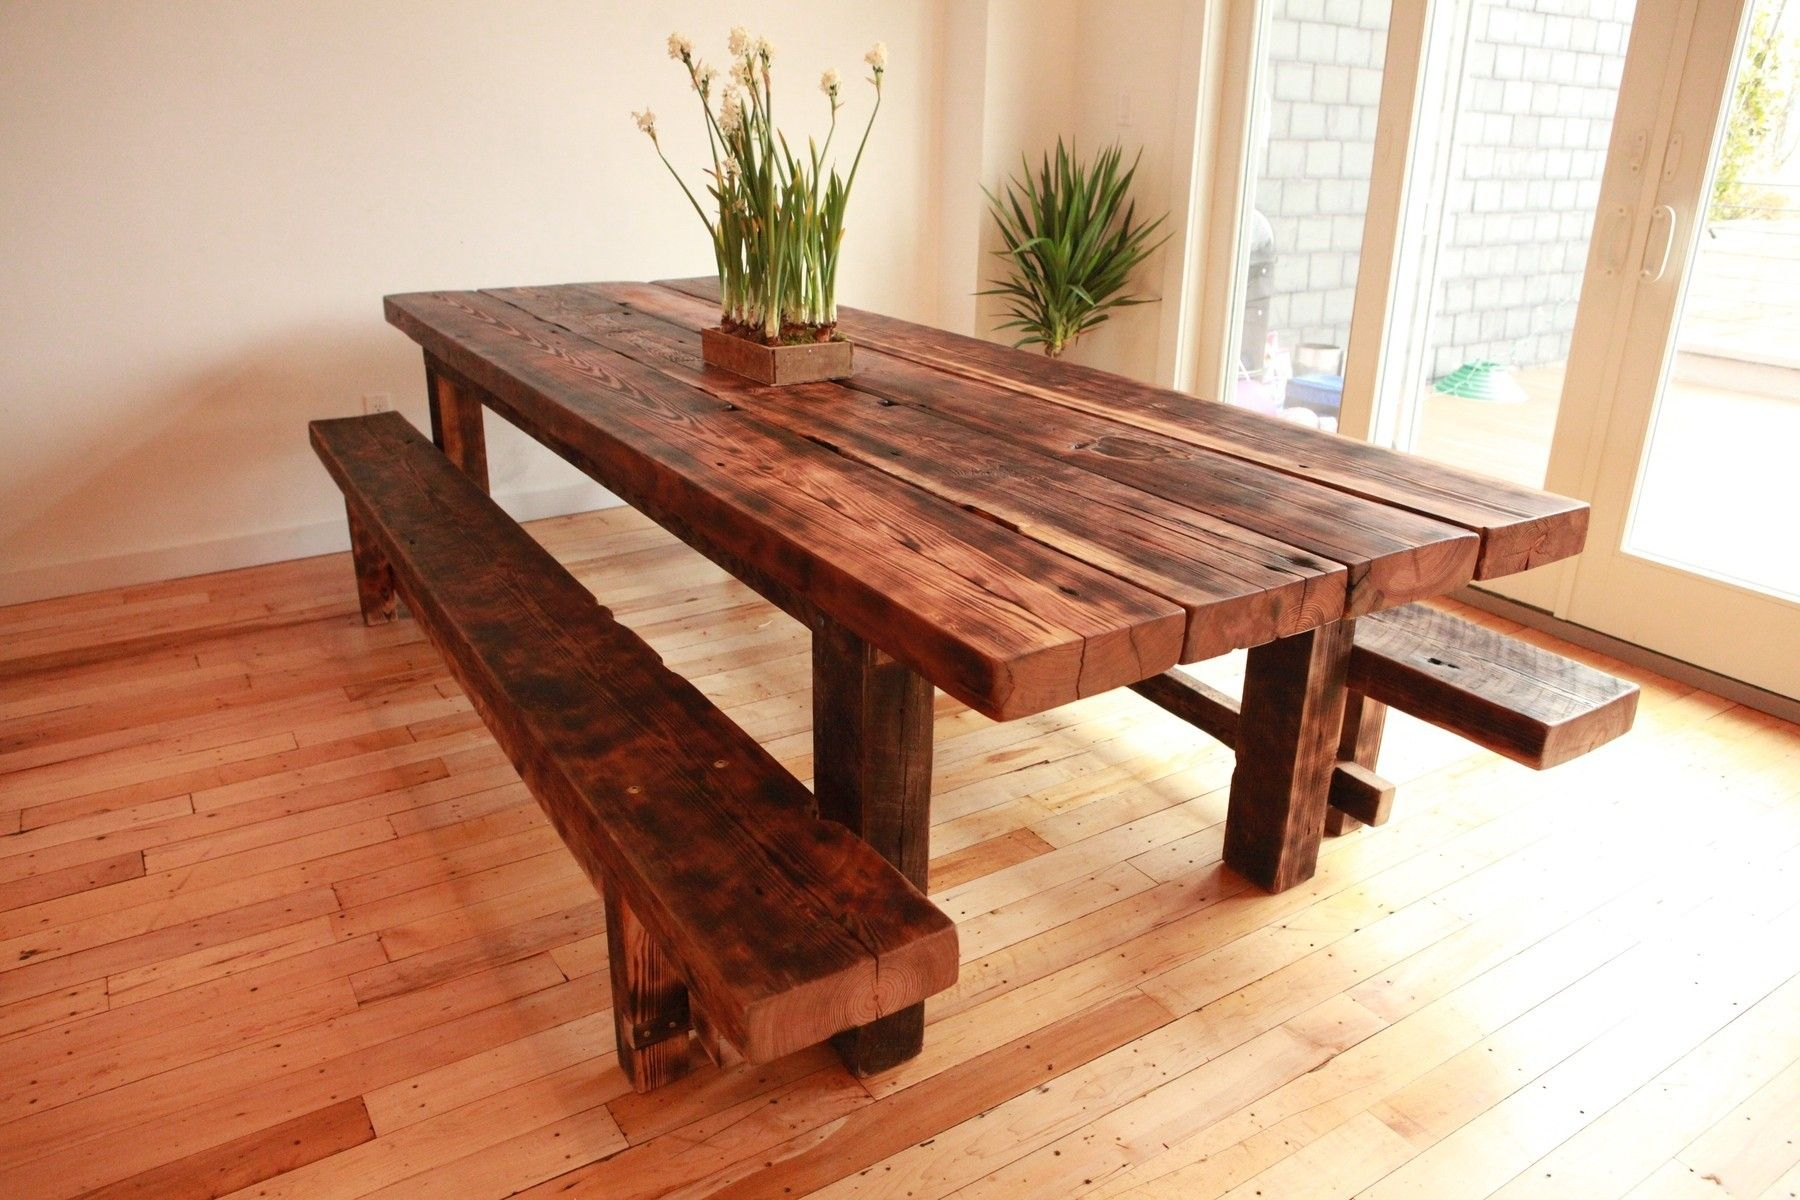 Square Furniture Dining Room Varnished Iron Wood Long Dining Table Added  Double Bench Placed On Overlay